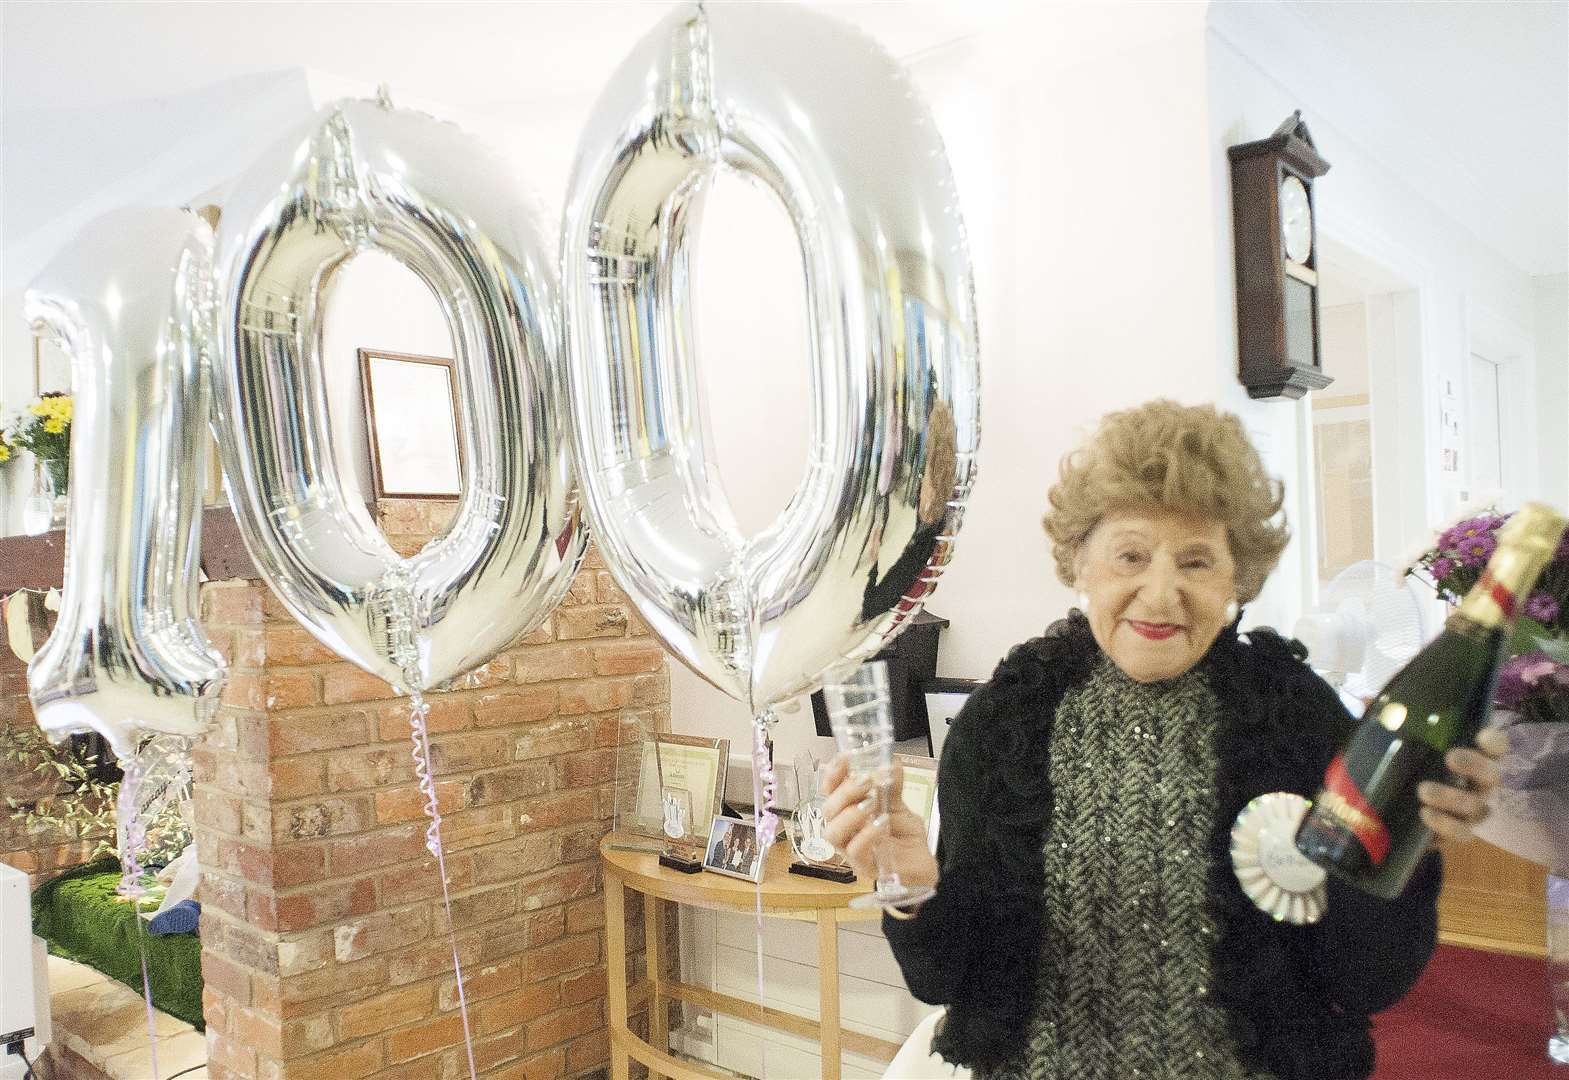 King's Lynn woman plans wing-walk after celebrating 100th birthday